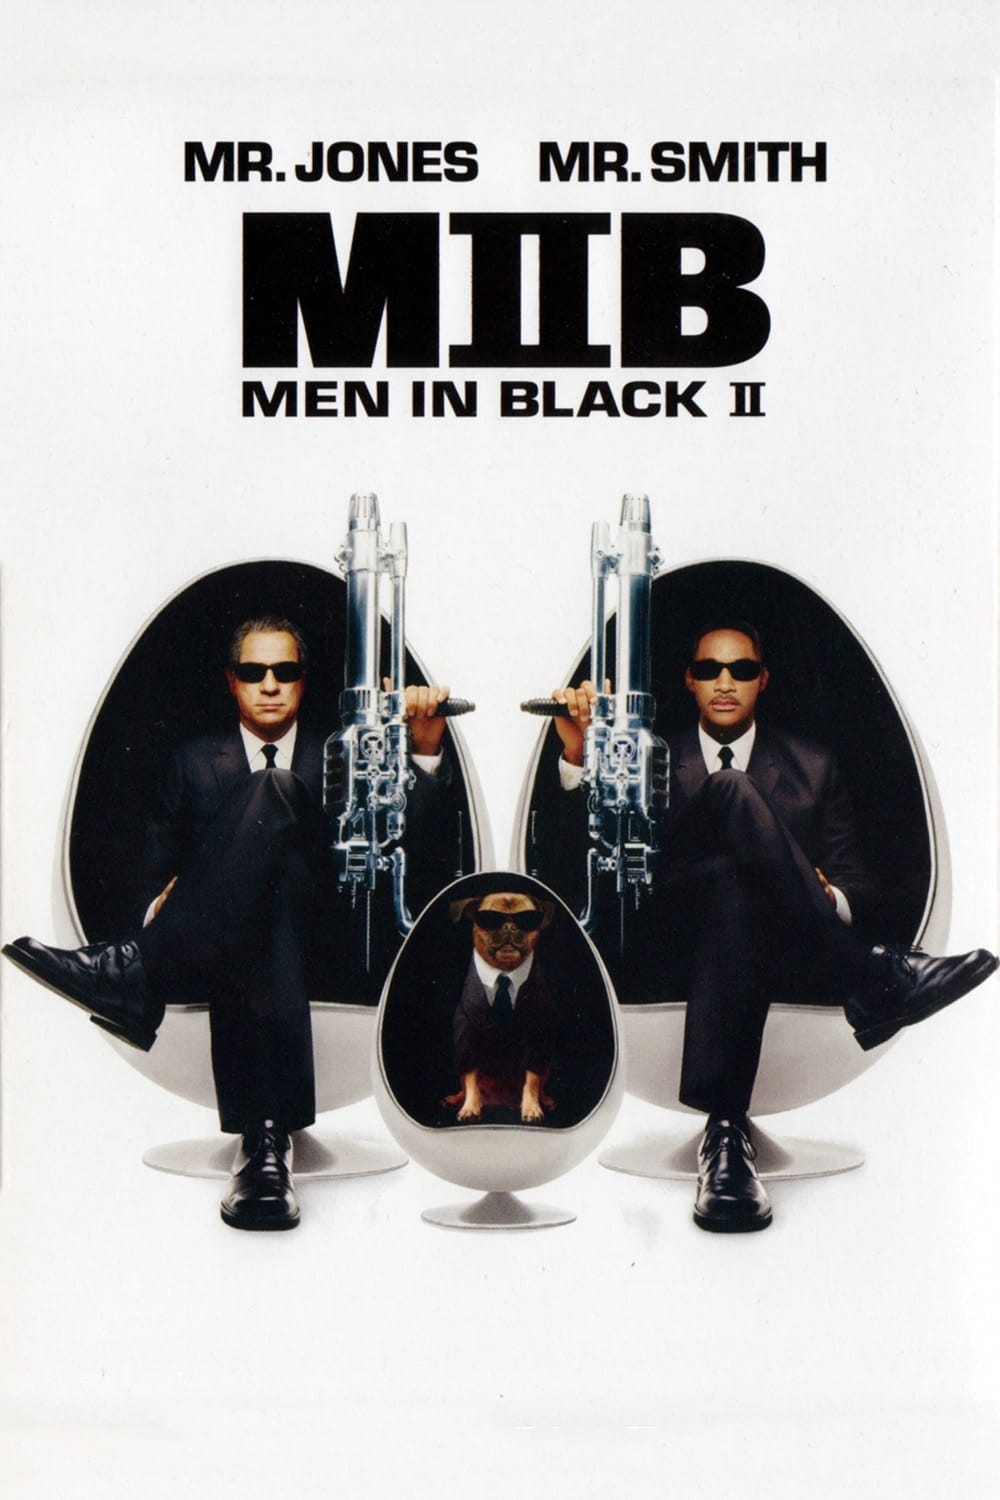 Men in Black (film series) - Wikipedia